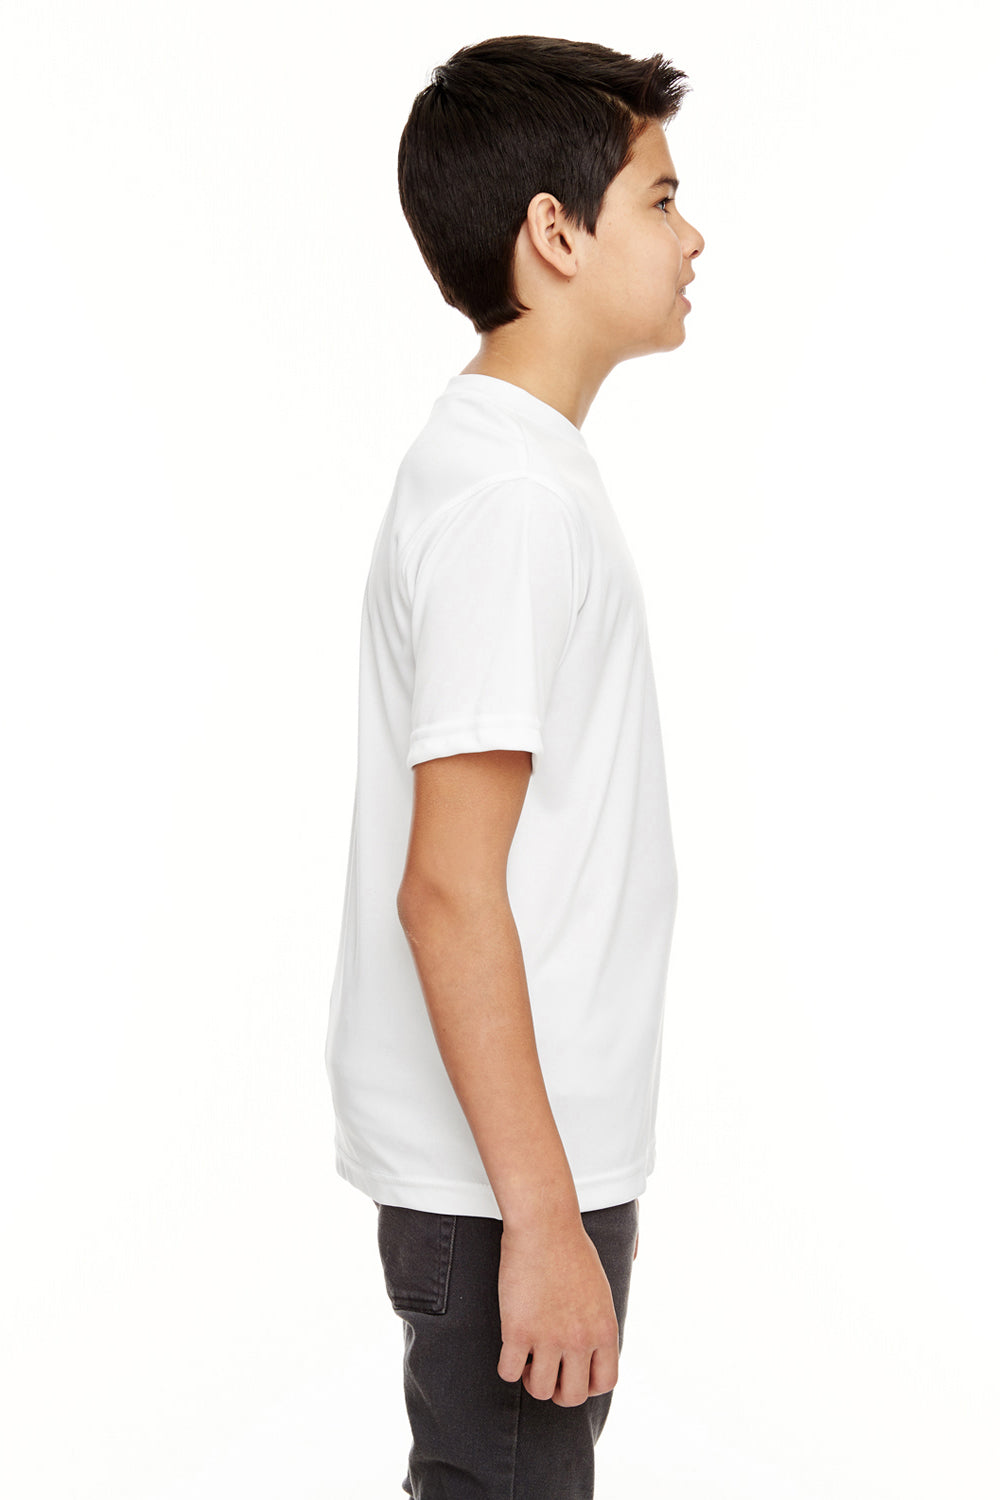 UltraClub 8620Y Youth Cool & Dry Performance Moisture Wicking Short Sleeve Crewneck T-Shirt White Side